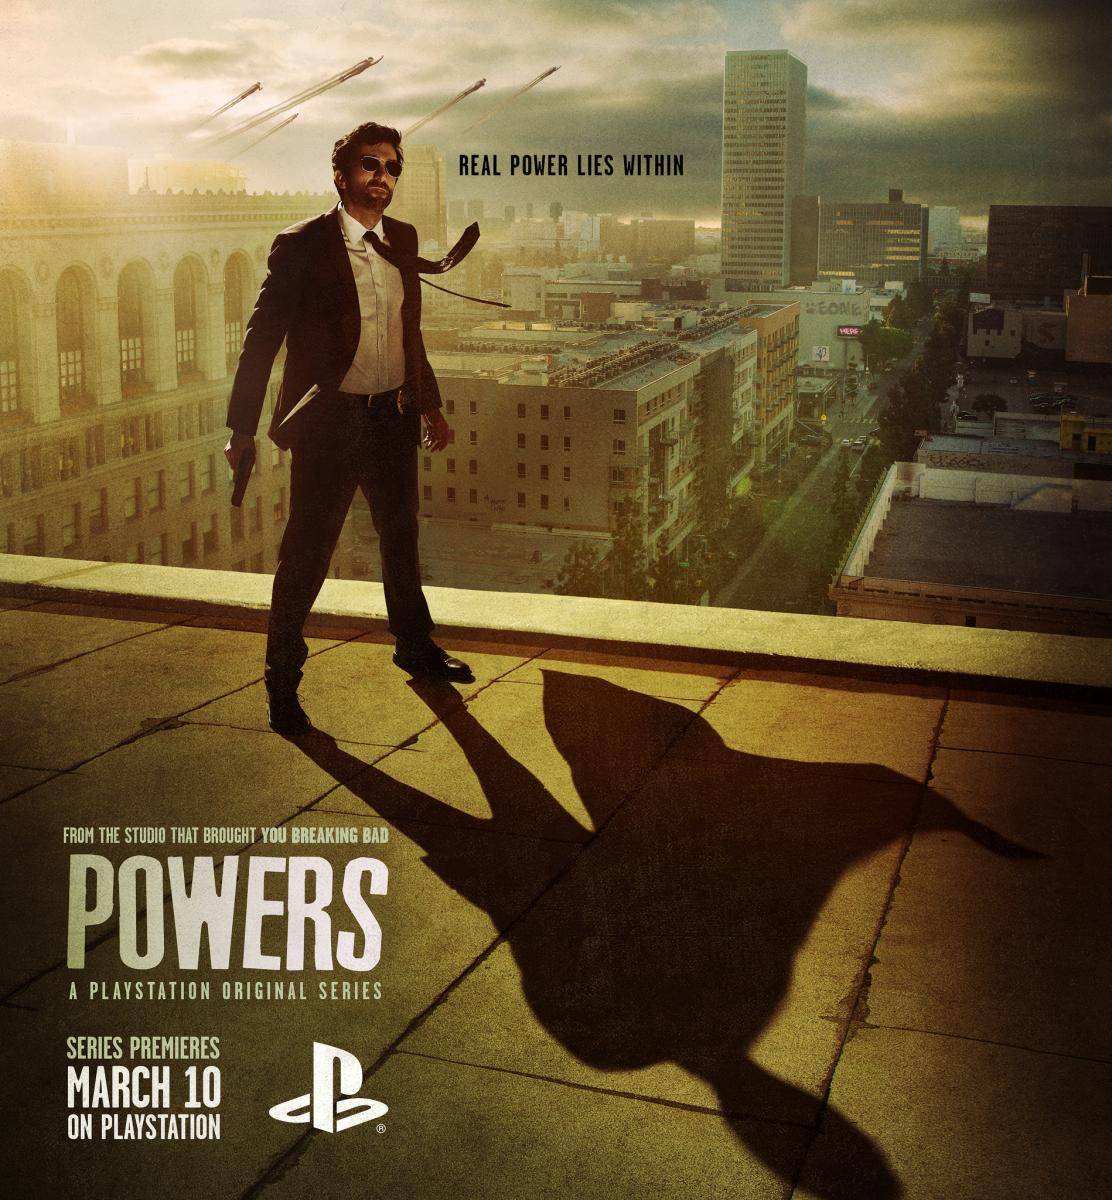 powers-psn-playstation-network-plus-now-original-series.jpg